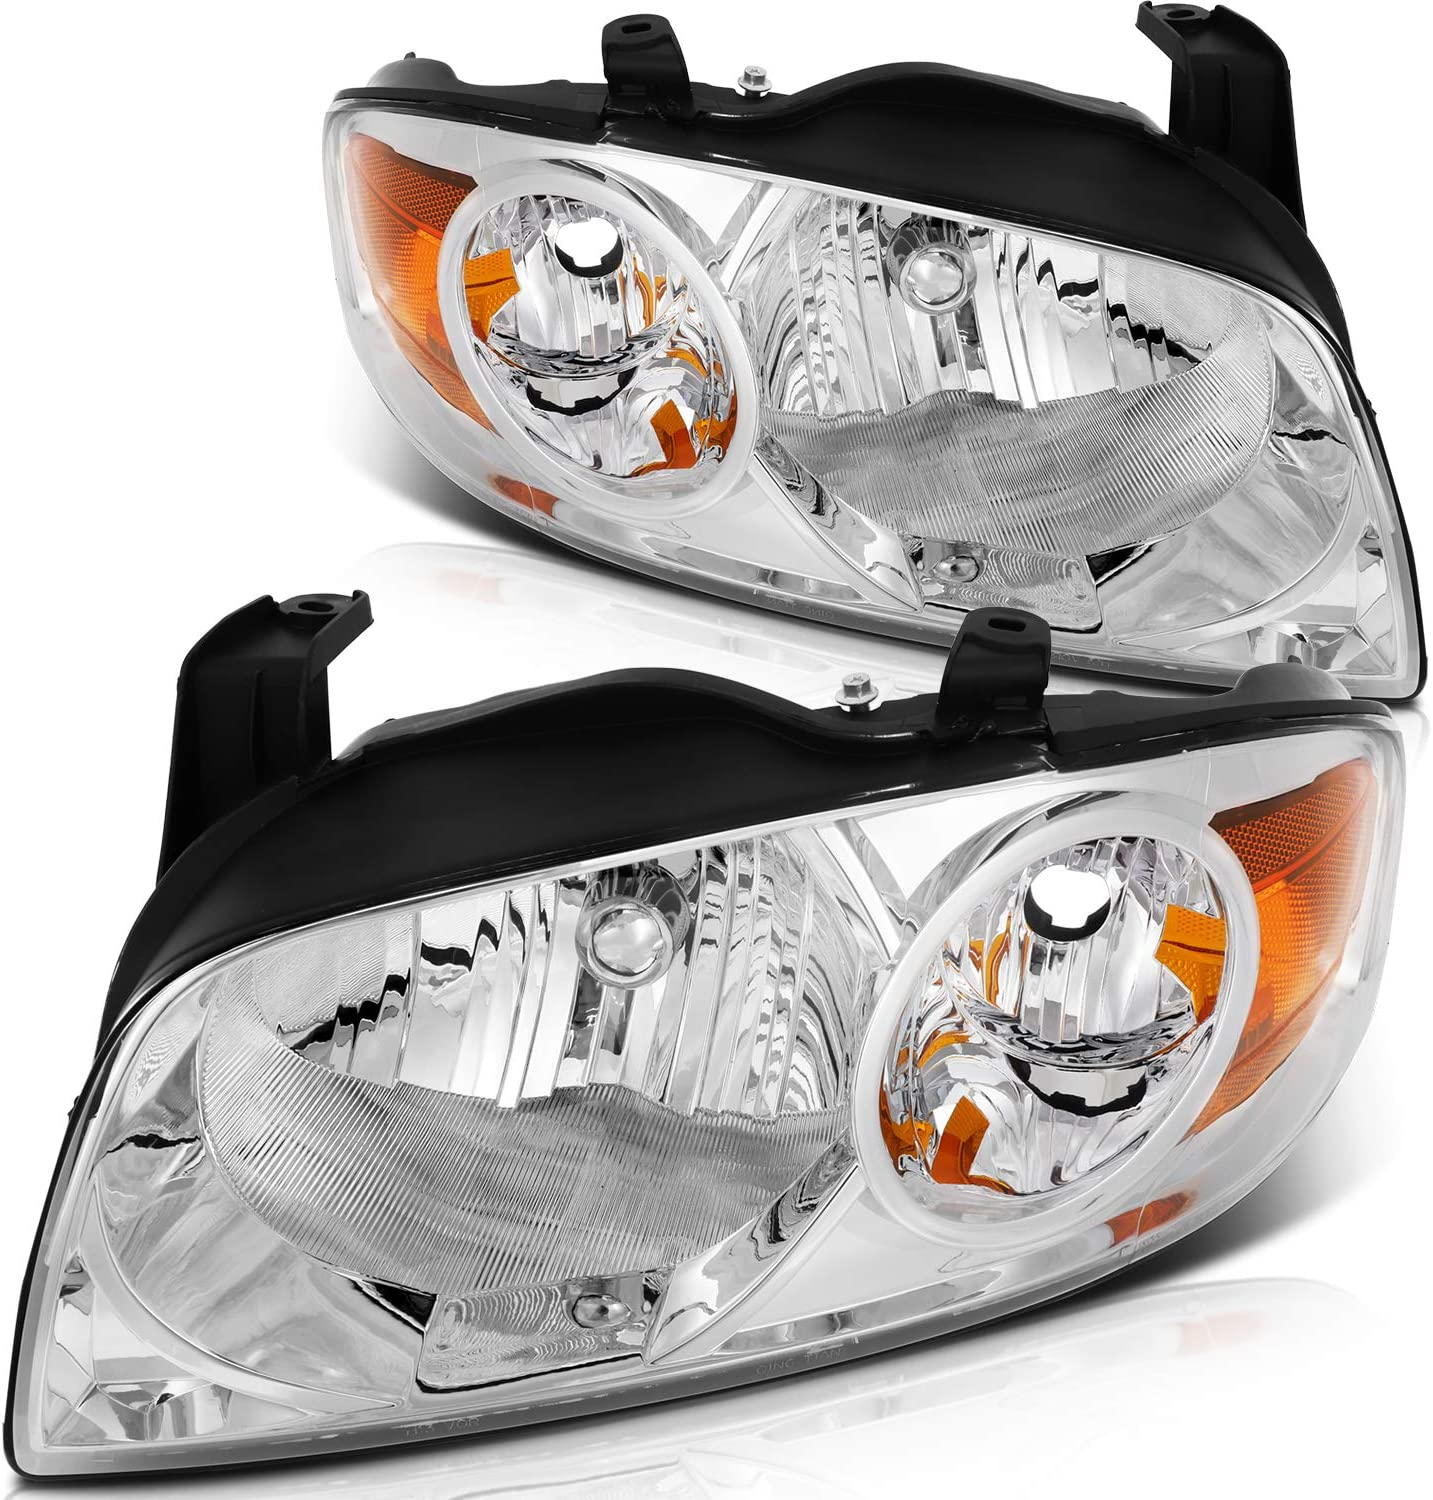 Genuine ANPART Headlight Assembly Ranking TOP9 Applicable Nissan Sentra For 2004-2006